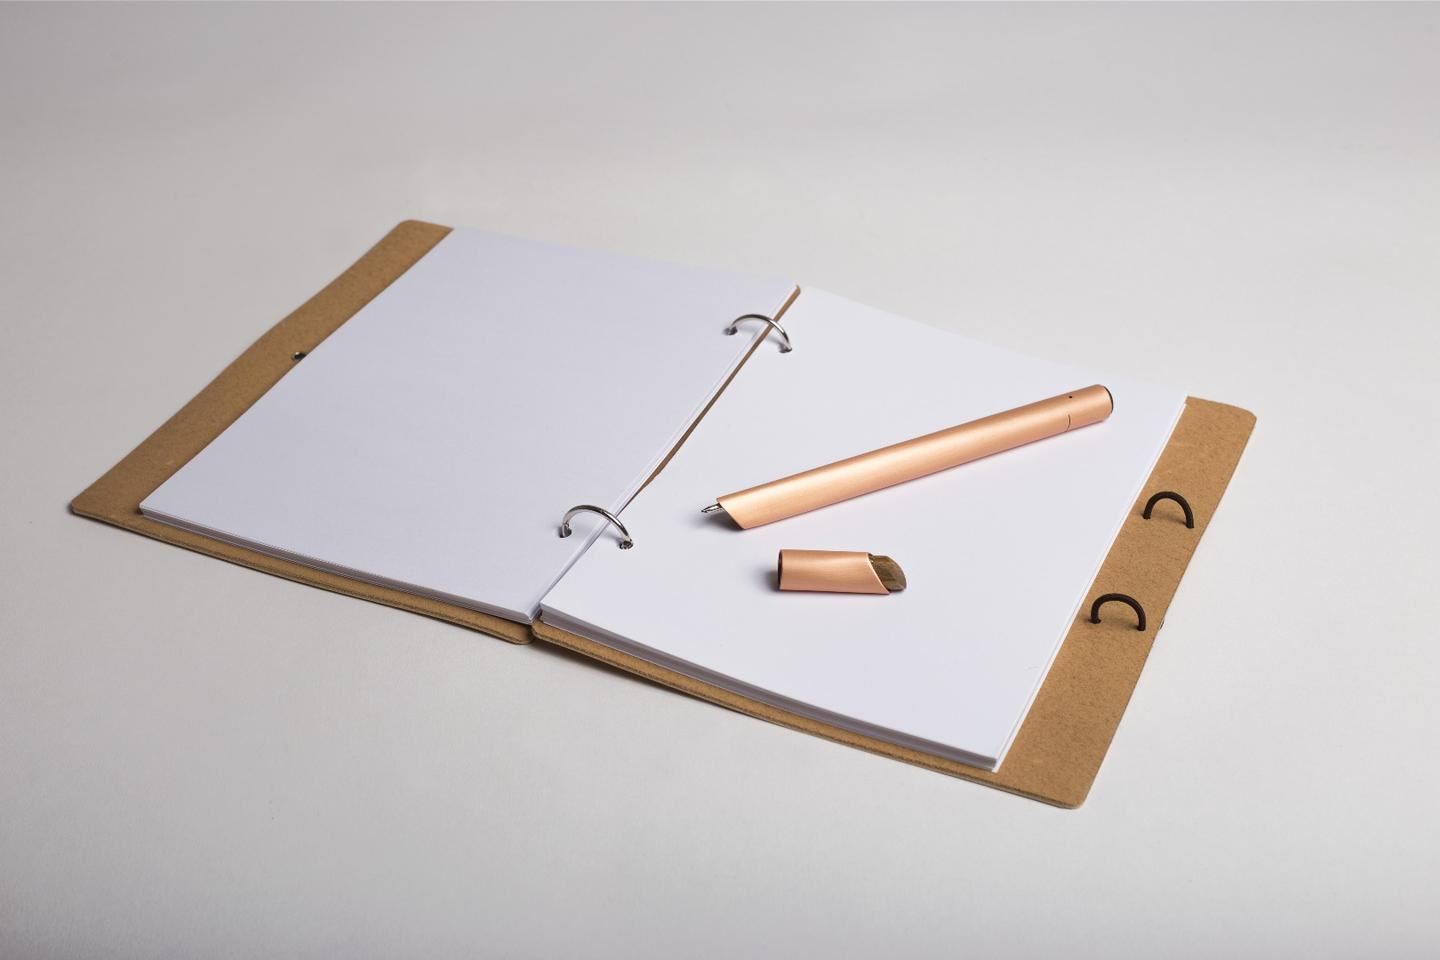 The Orée Stylograph records the user's writing or drawing on its internal storage